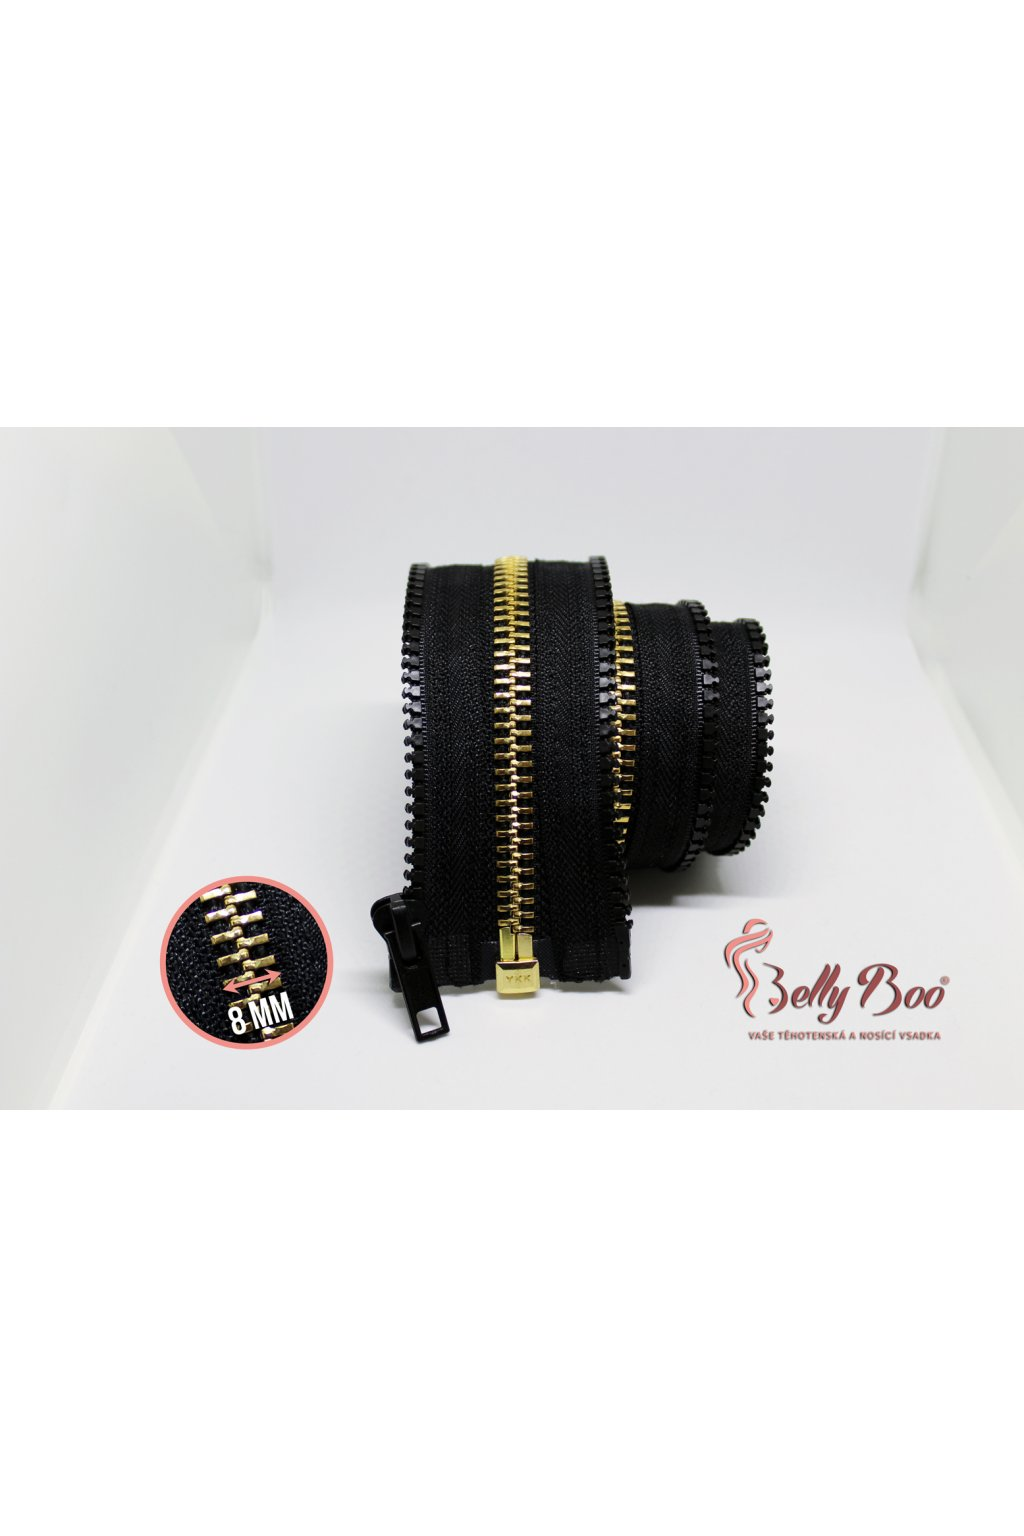 60869 69 vyr 12Zip adapter kovovy 8 mm